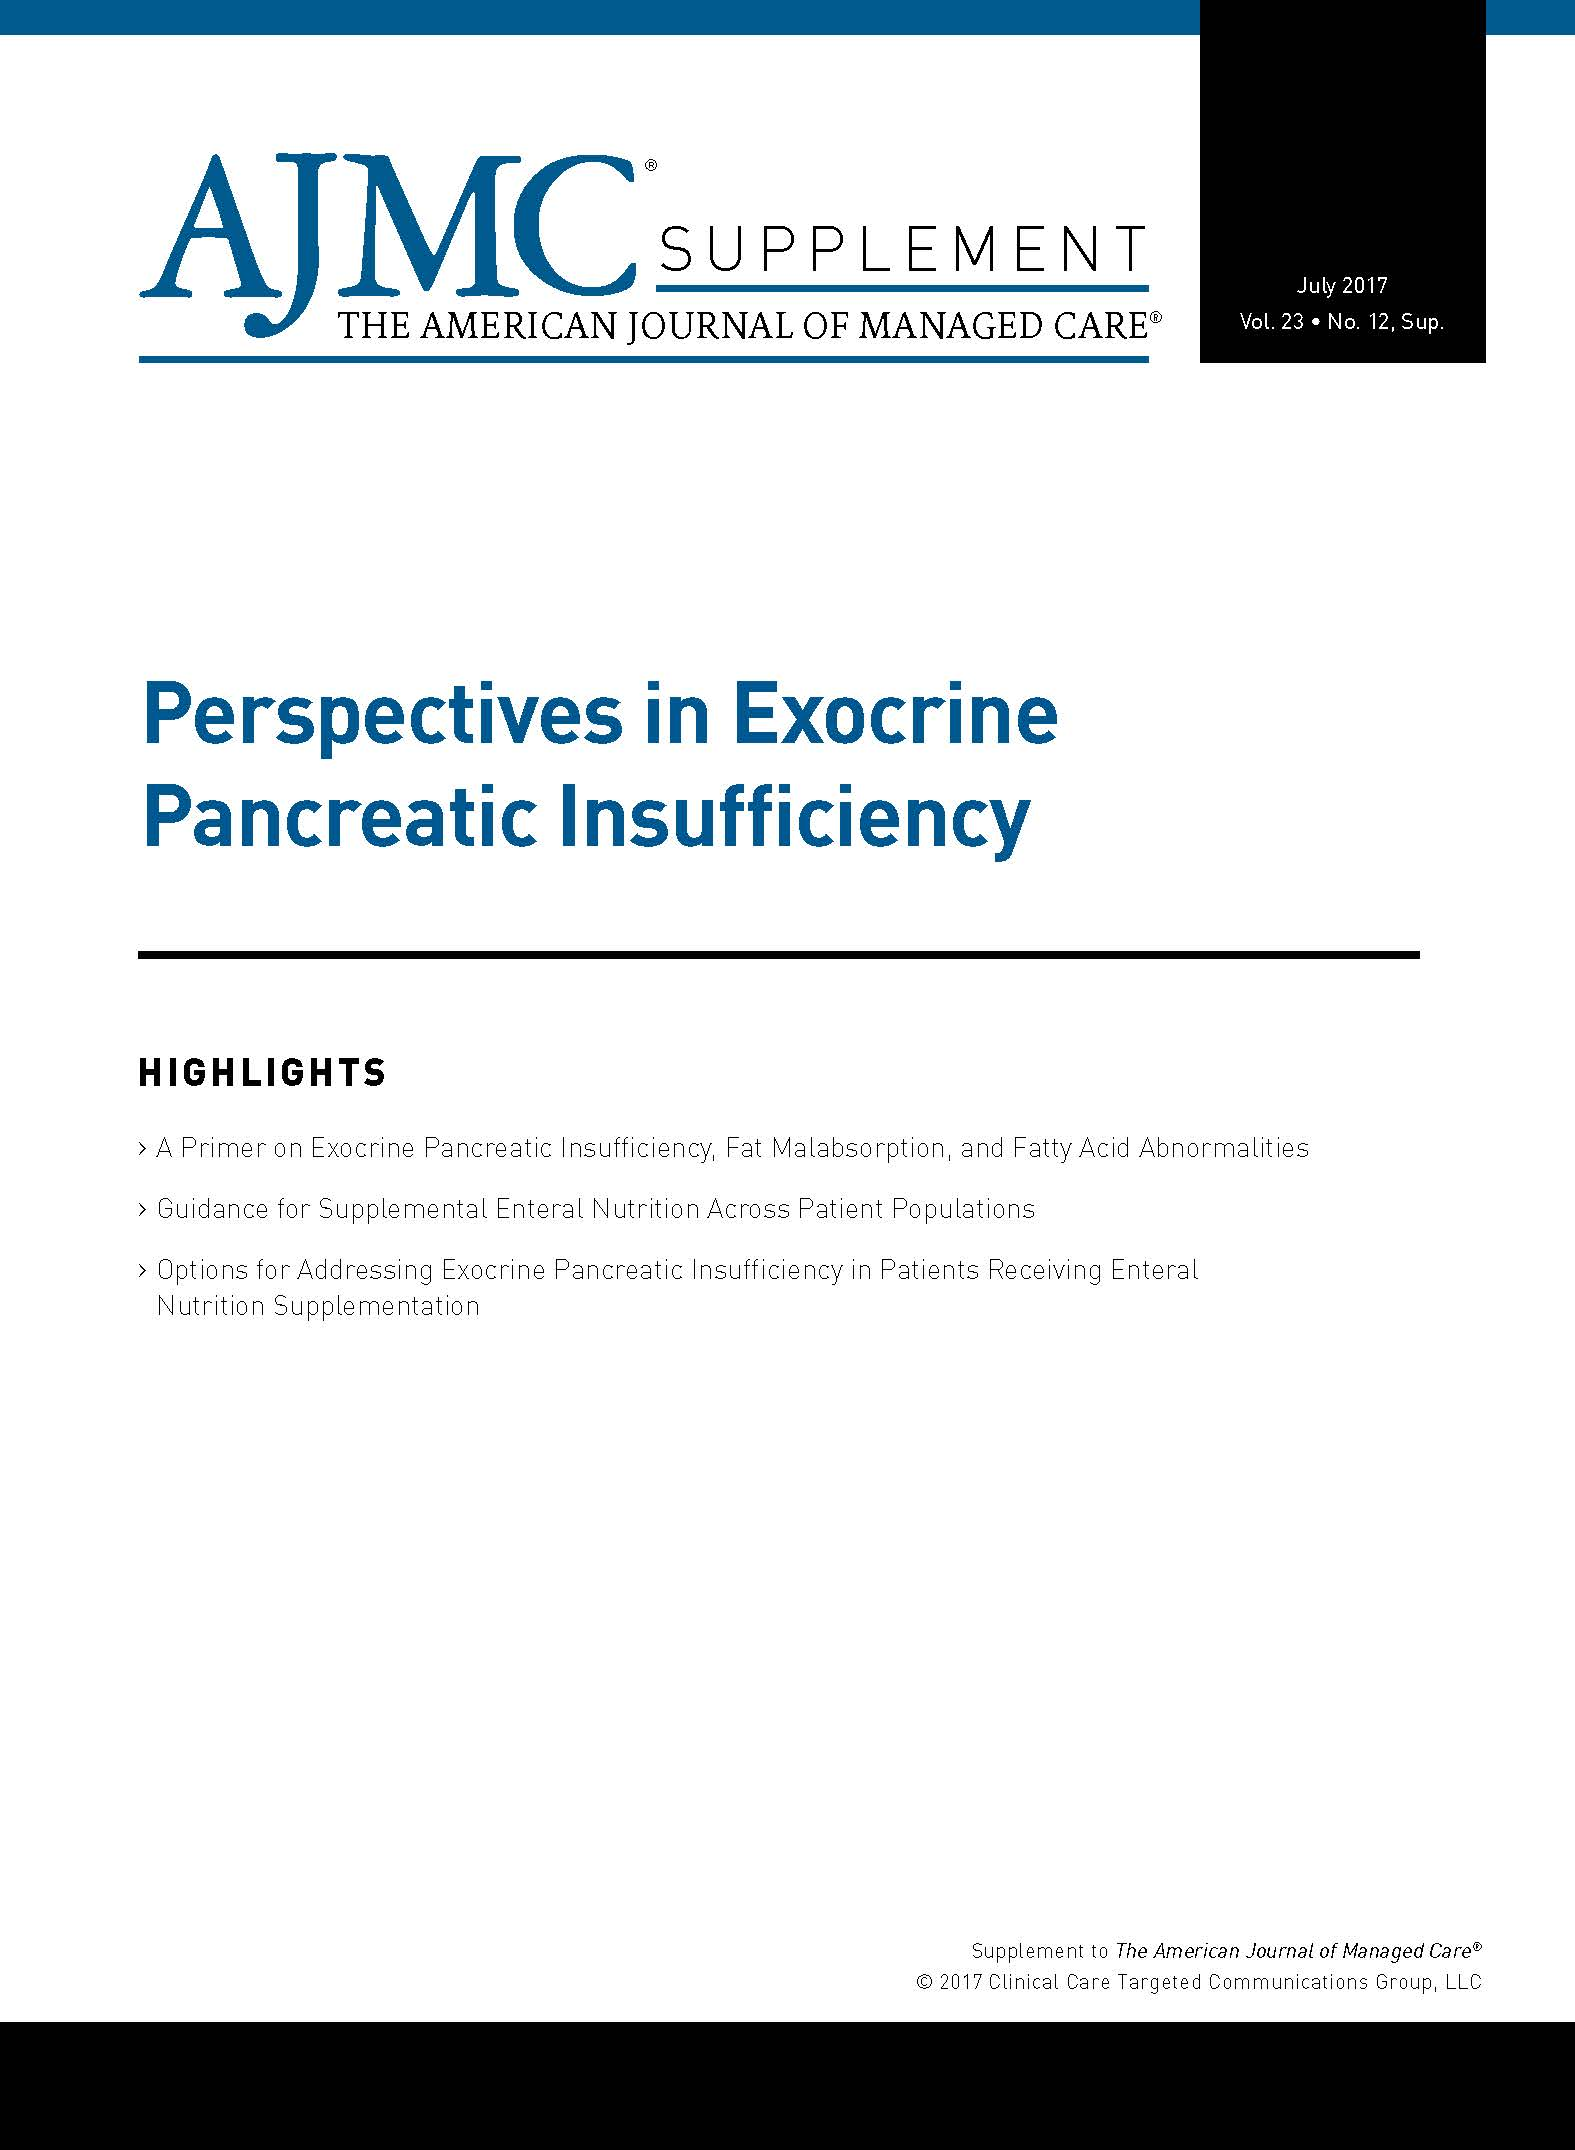 Perspectives in Exocrine Pancreatic Insufficiency